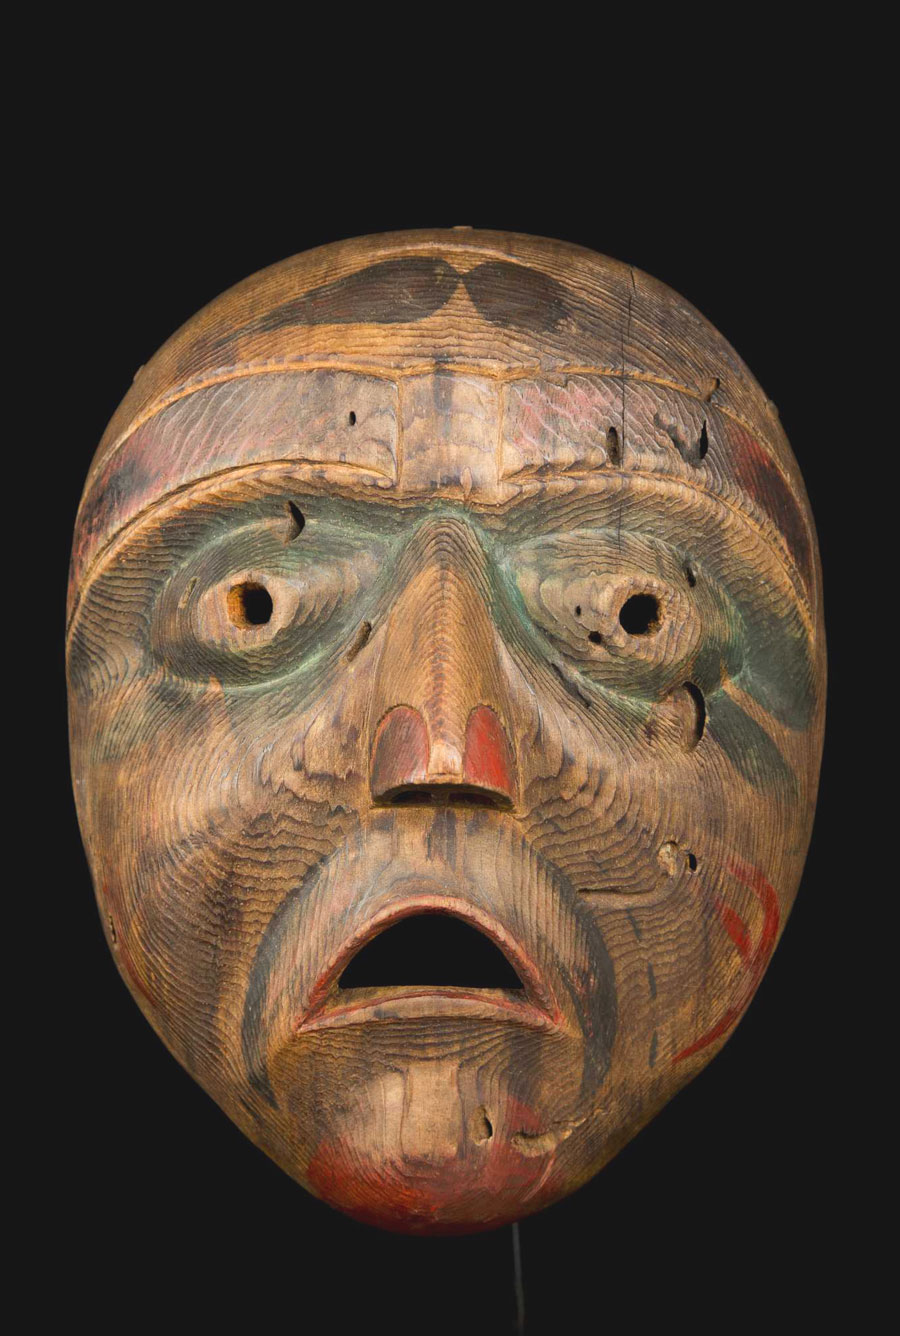 Old Bella Coola mask from the NWC